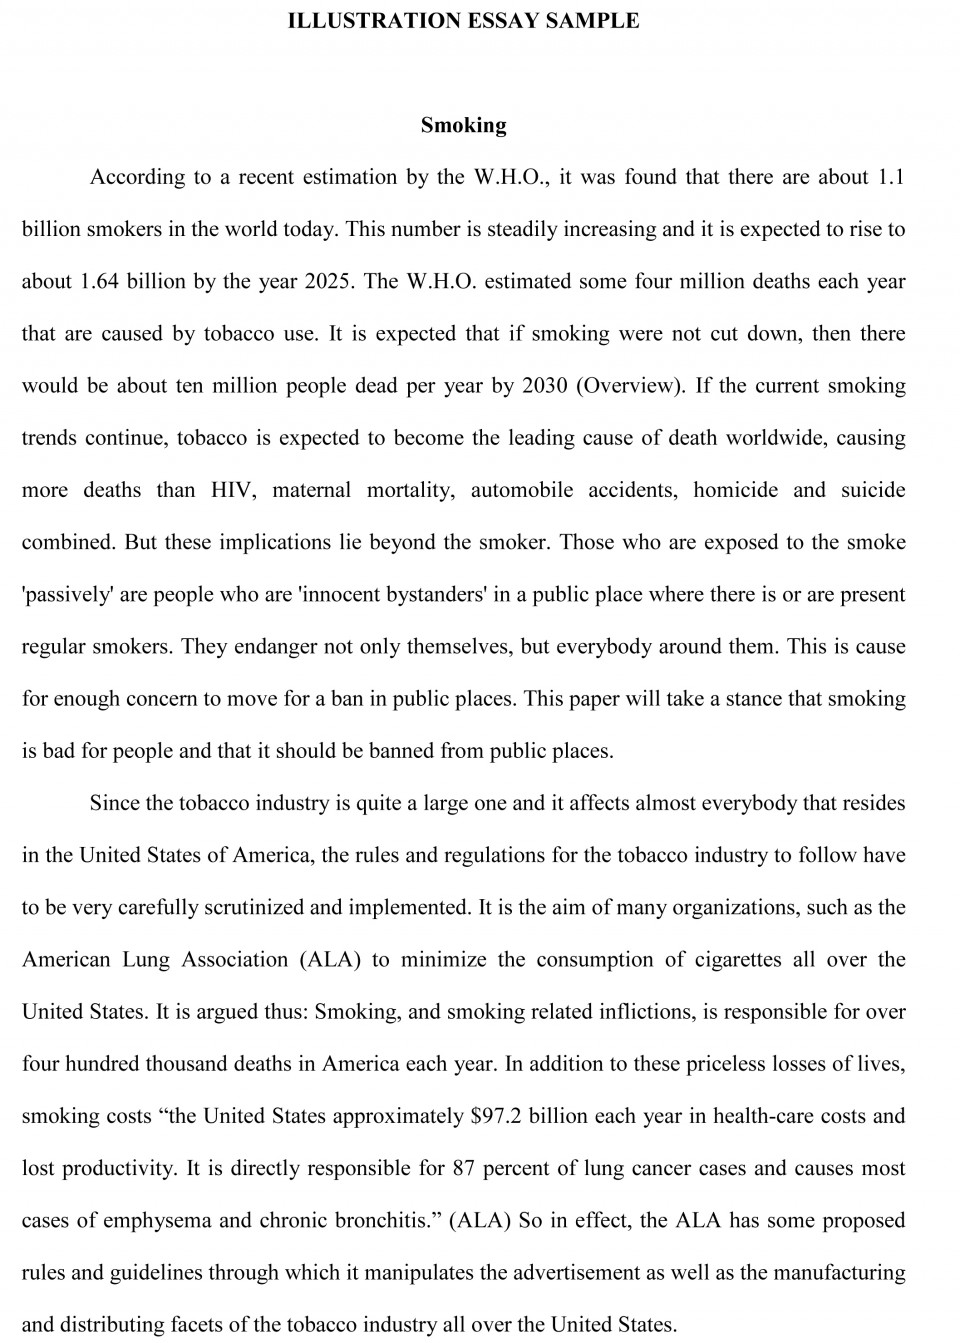 014 Illustration Essay Sample How To Write Autobiography Exceptional A An Introduction Autobiographical For College Grad School 960